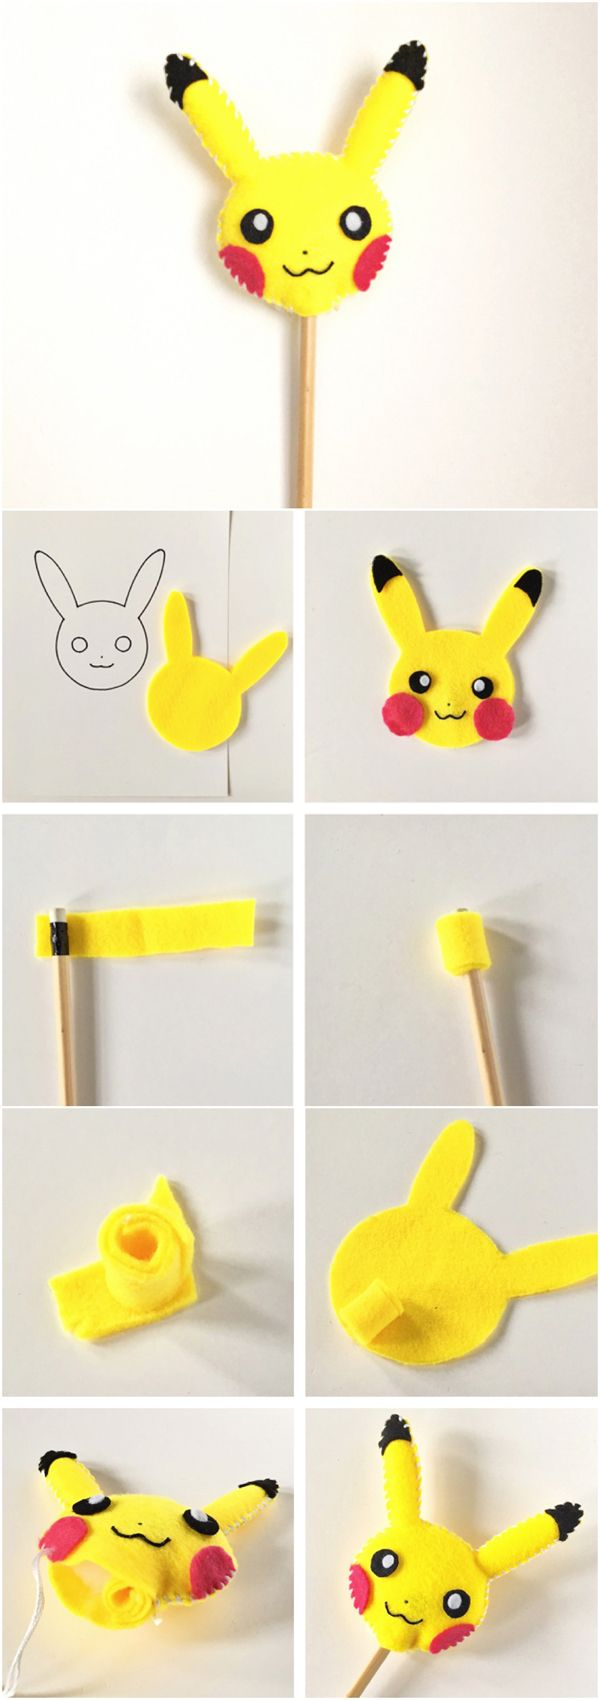 Pikachu Pokemon Felt Pencil Topper DIY. Cute kids craft for back to school!